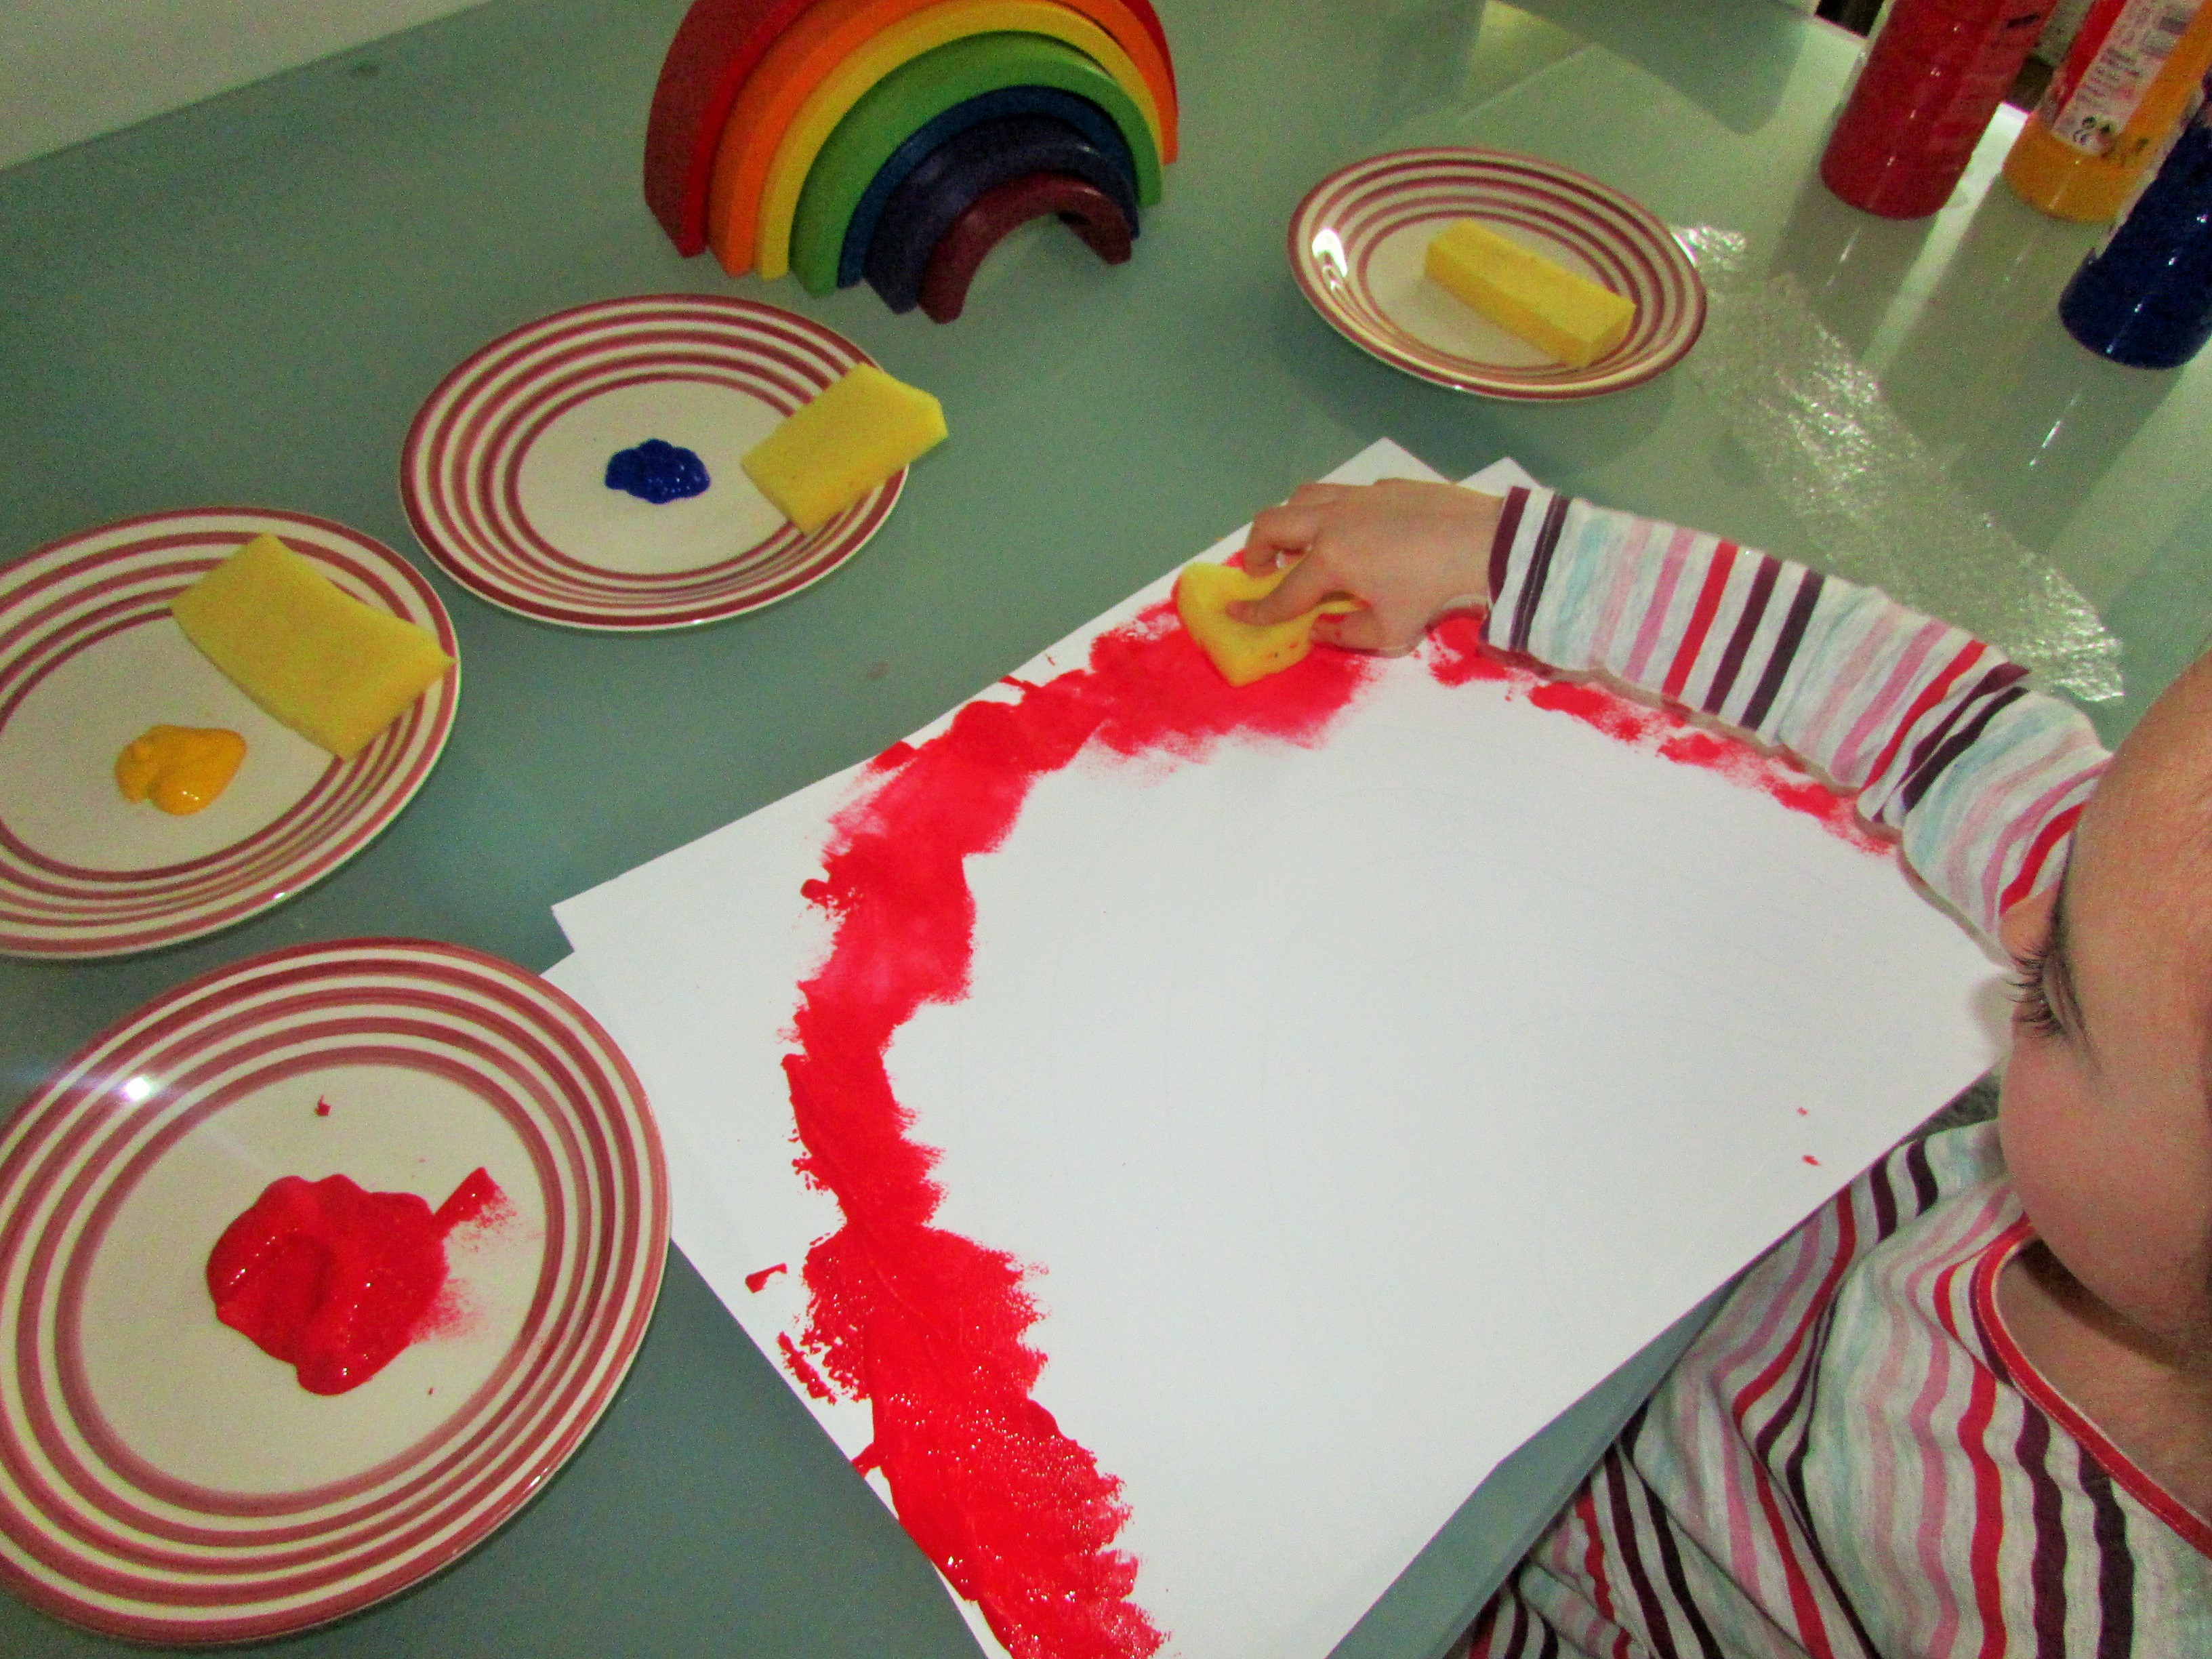 colour mixing activities eyfs : Co Colour Mixing Activities For Preschoolers Craft Ideas For Kids Rainbow Colour Mixing